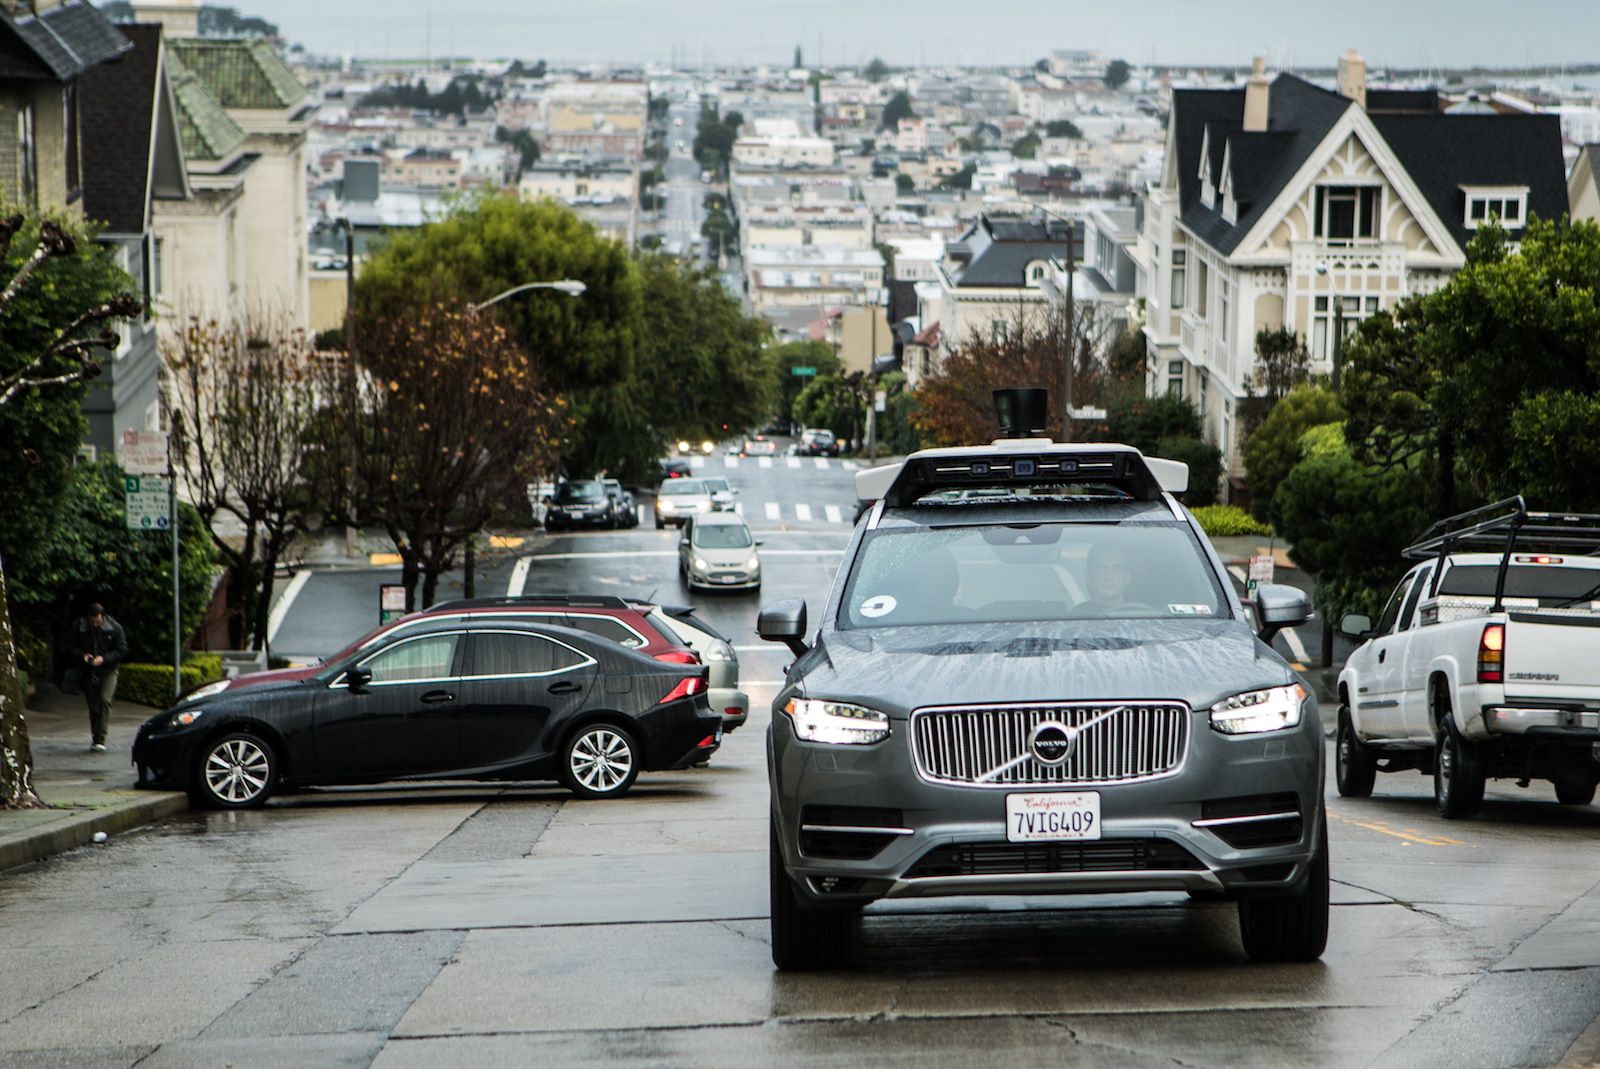 Are driverless tests endangering pedestrians — Uber's fatal crash